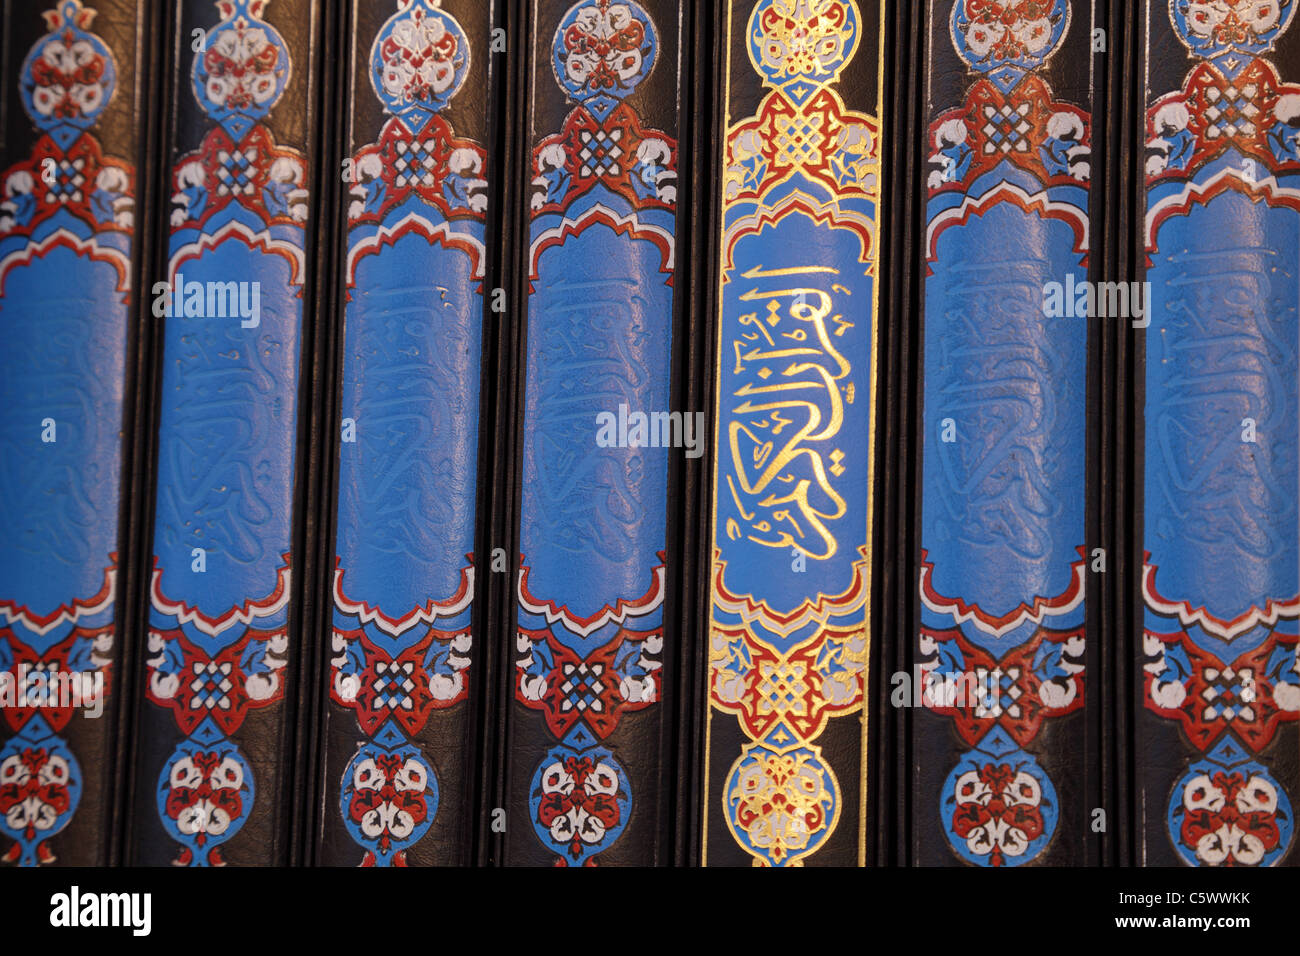 The holy Quran books in a mosque - Stock Image